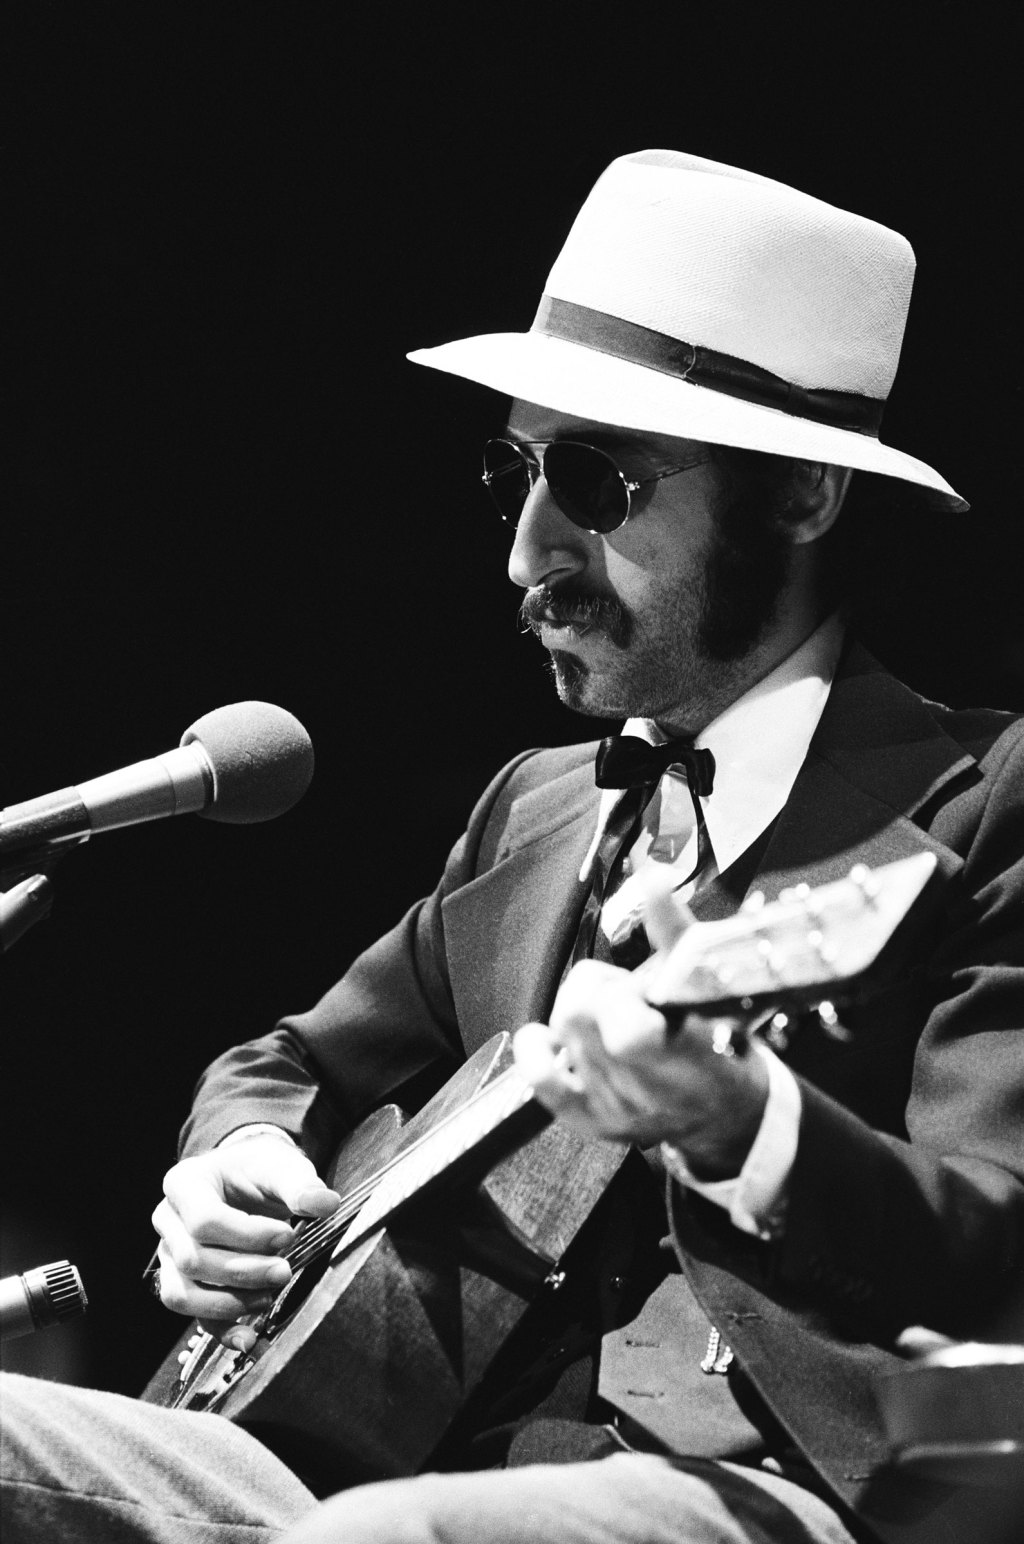 """Saturday Night Live's Musical Guest Leon Redbone during """"Shine on Harvest Moon"""" musical performance on May 29, 1976."""